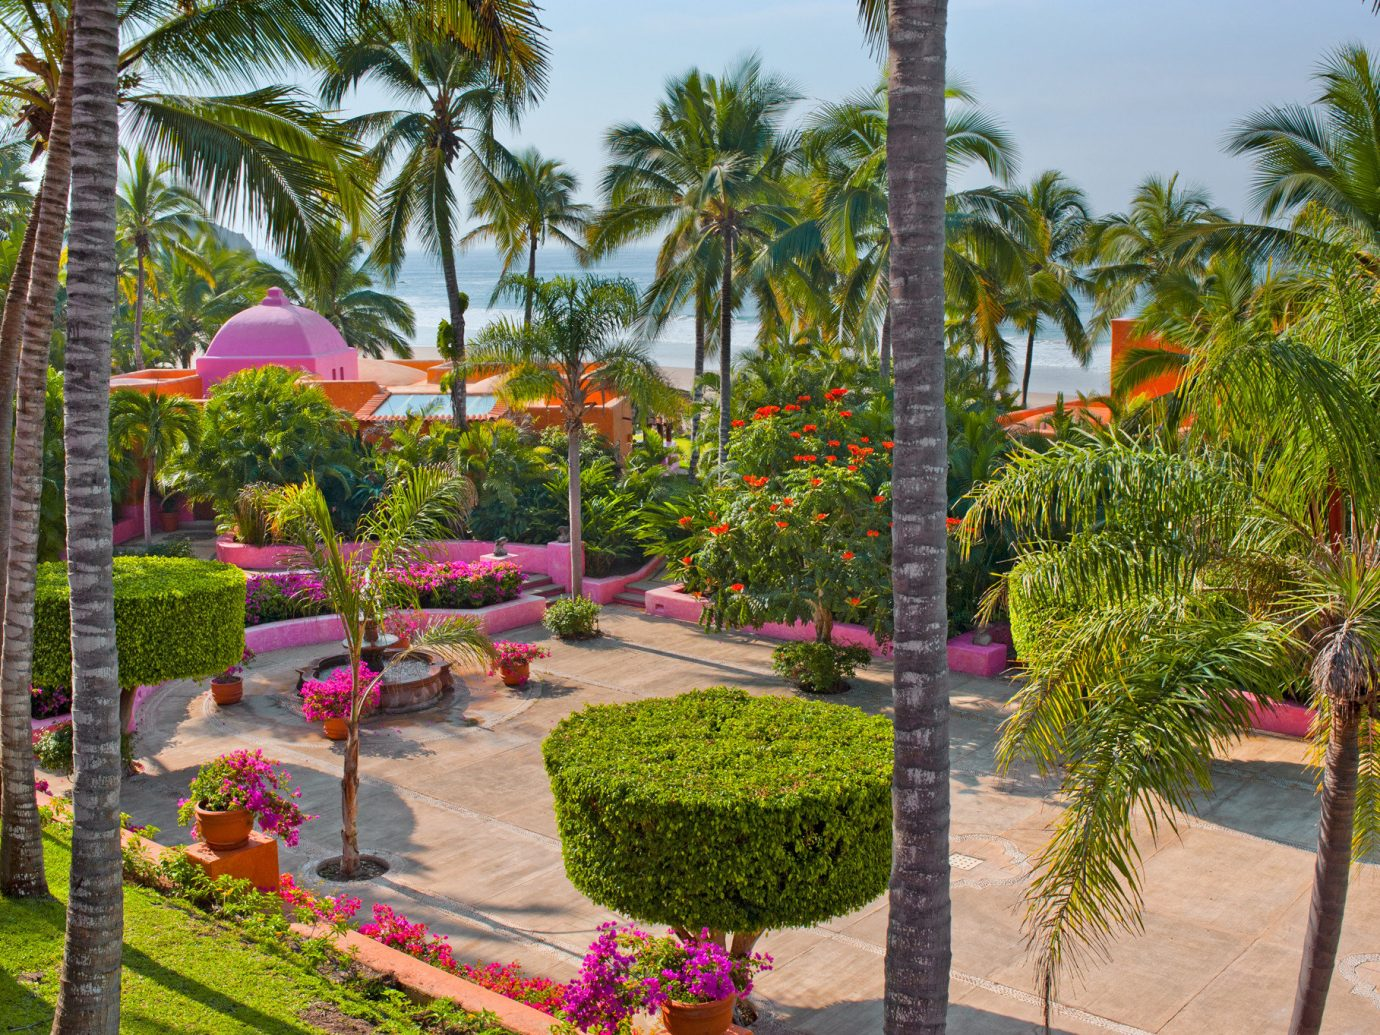 Grounds Hotels Island Romance tree outdoor sky palm Resort flora botany Garden flower plant arecales botanical garden estate palm family Courtyard yard lined